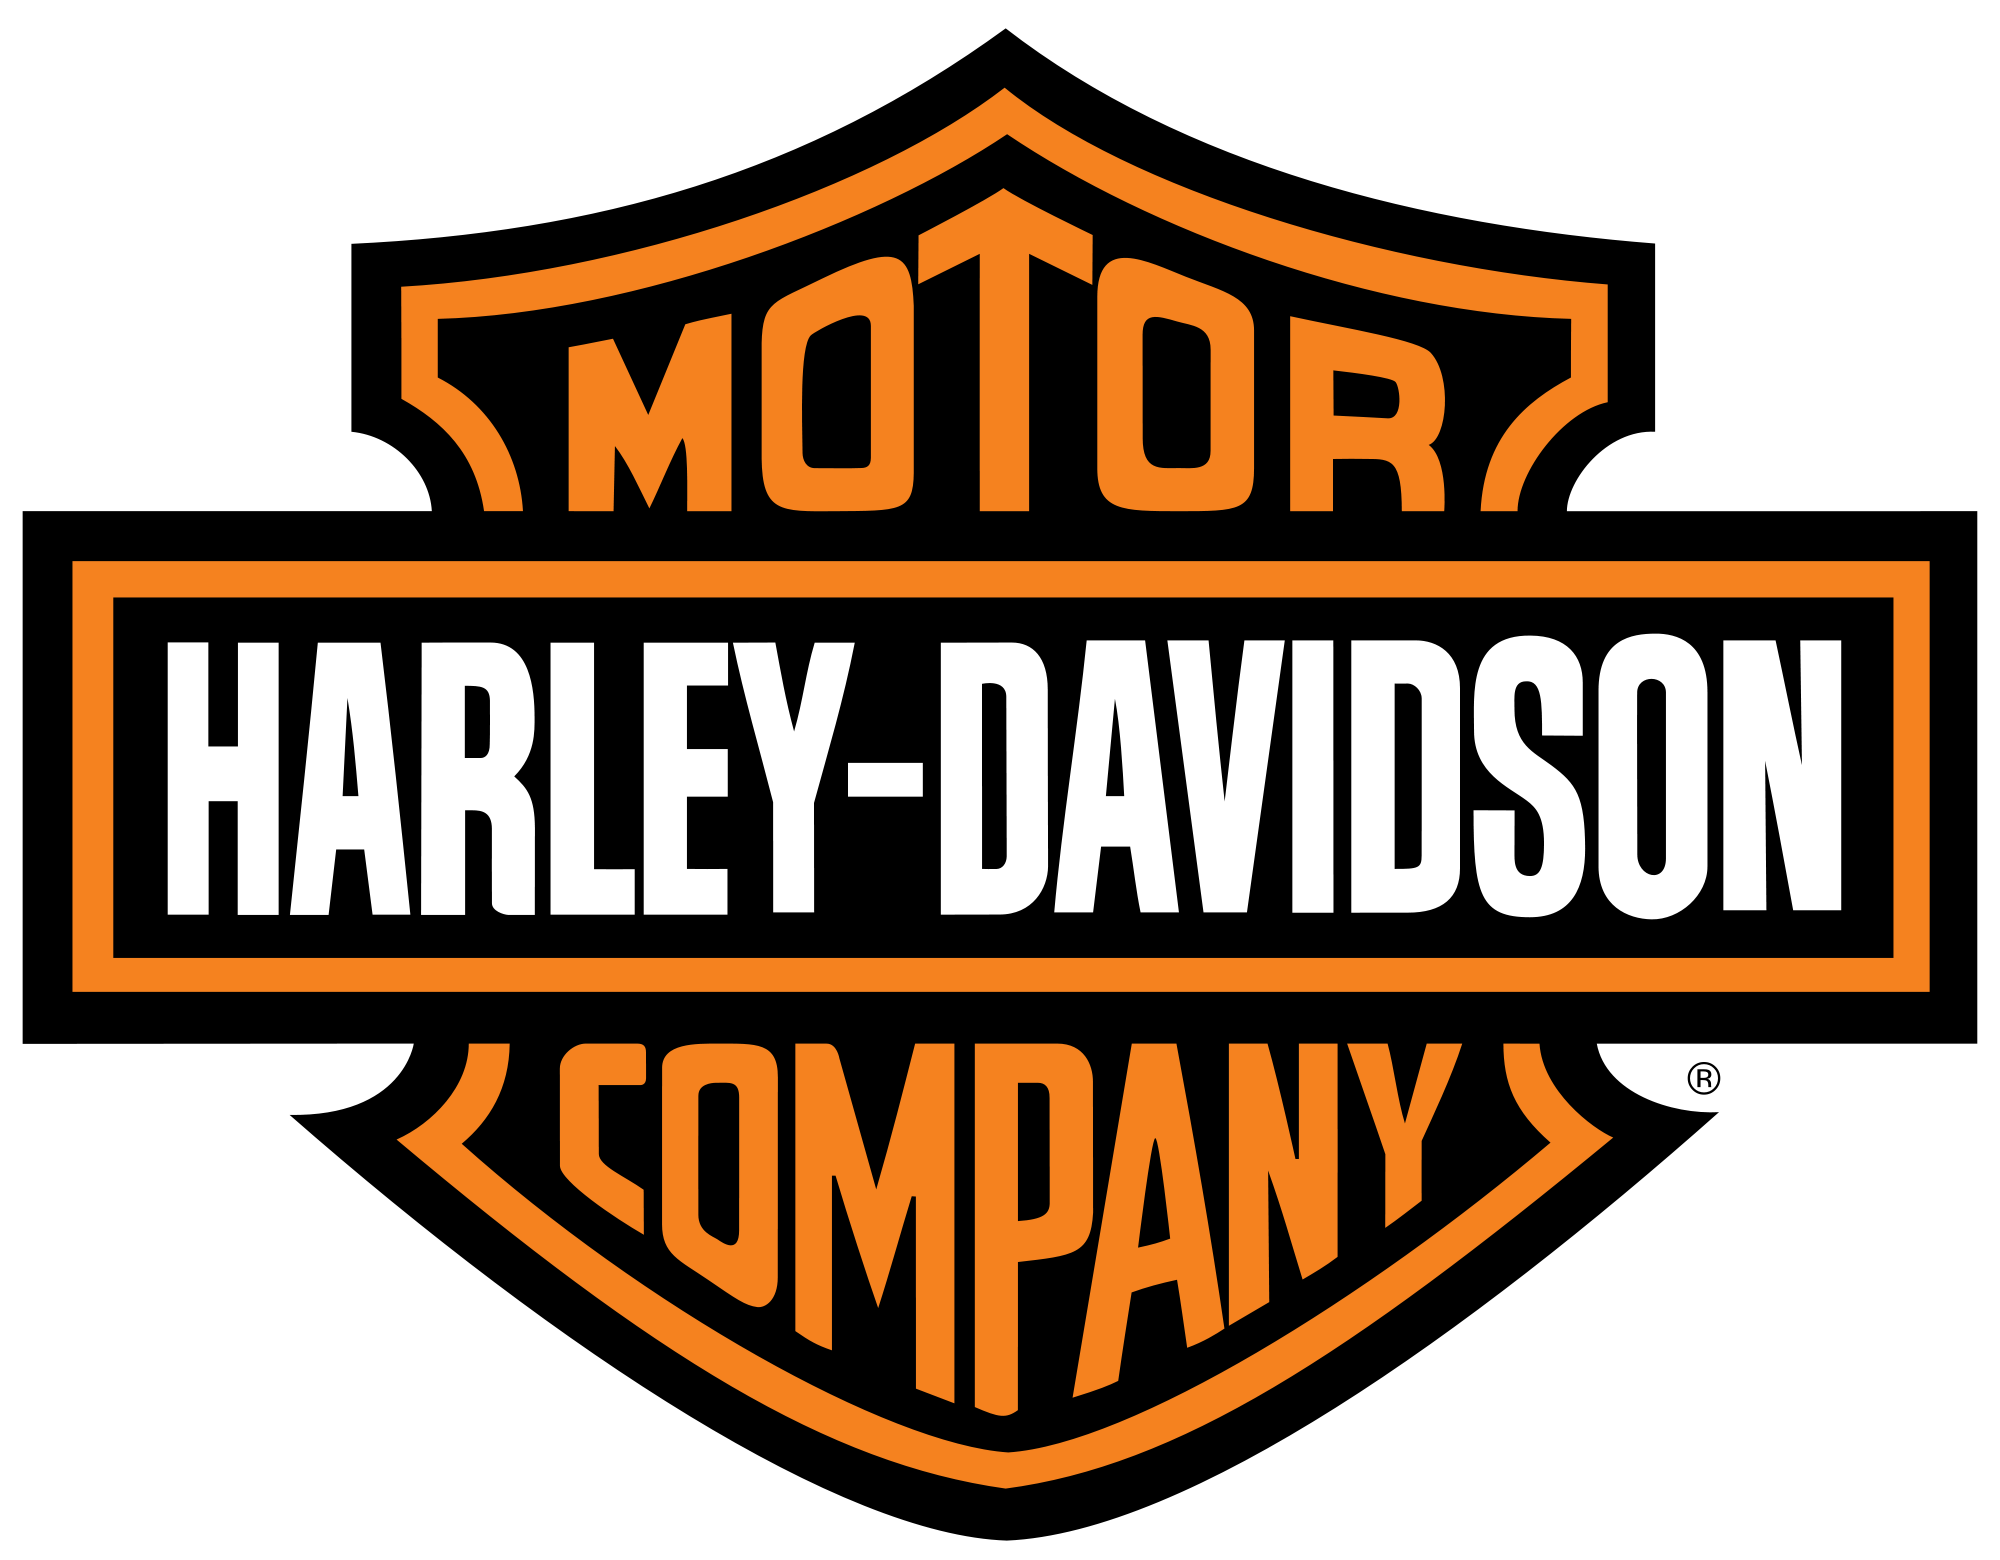 image library stock Simple free on dumielauxepices. Harley davidson clipart